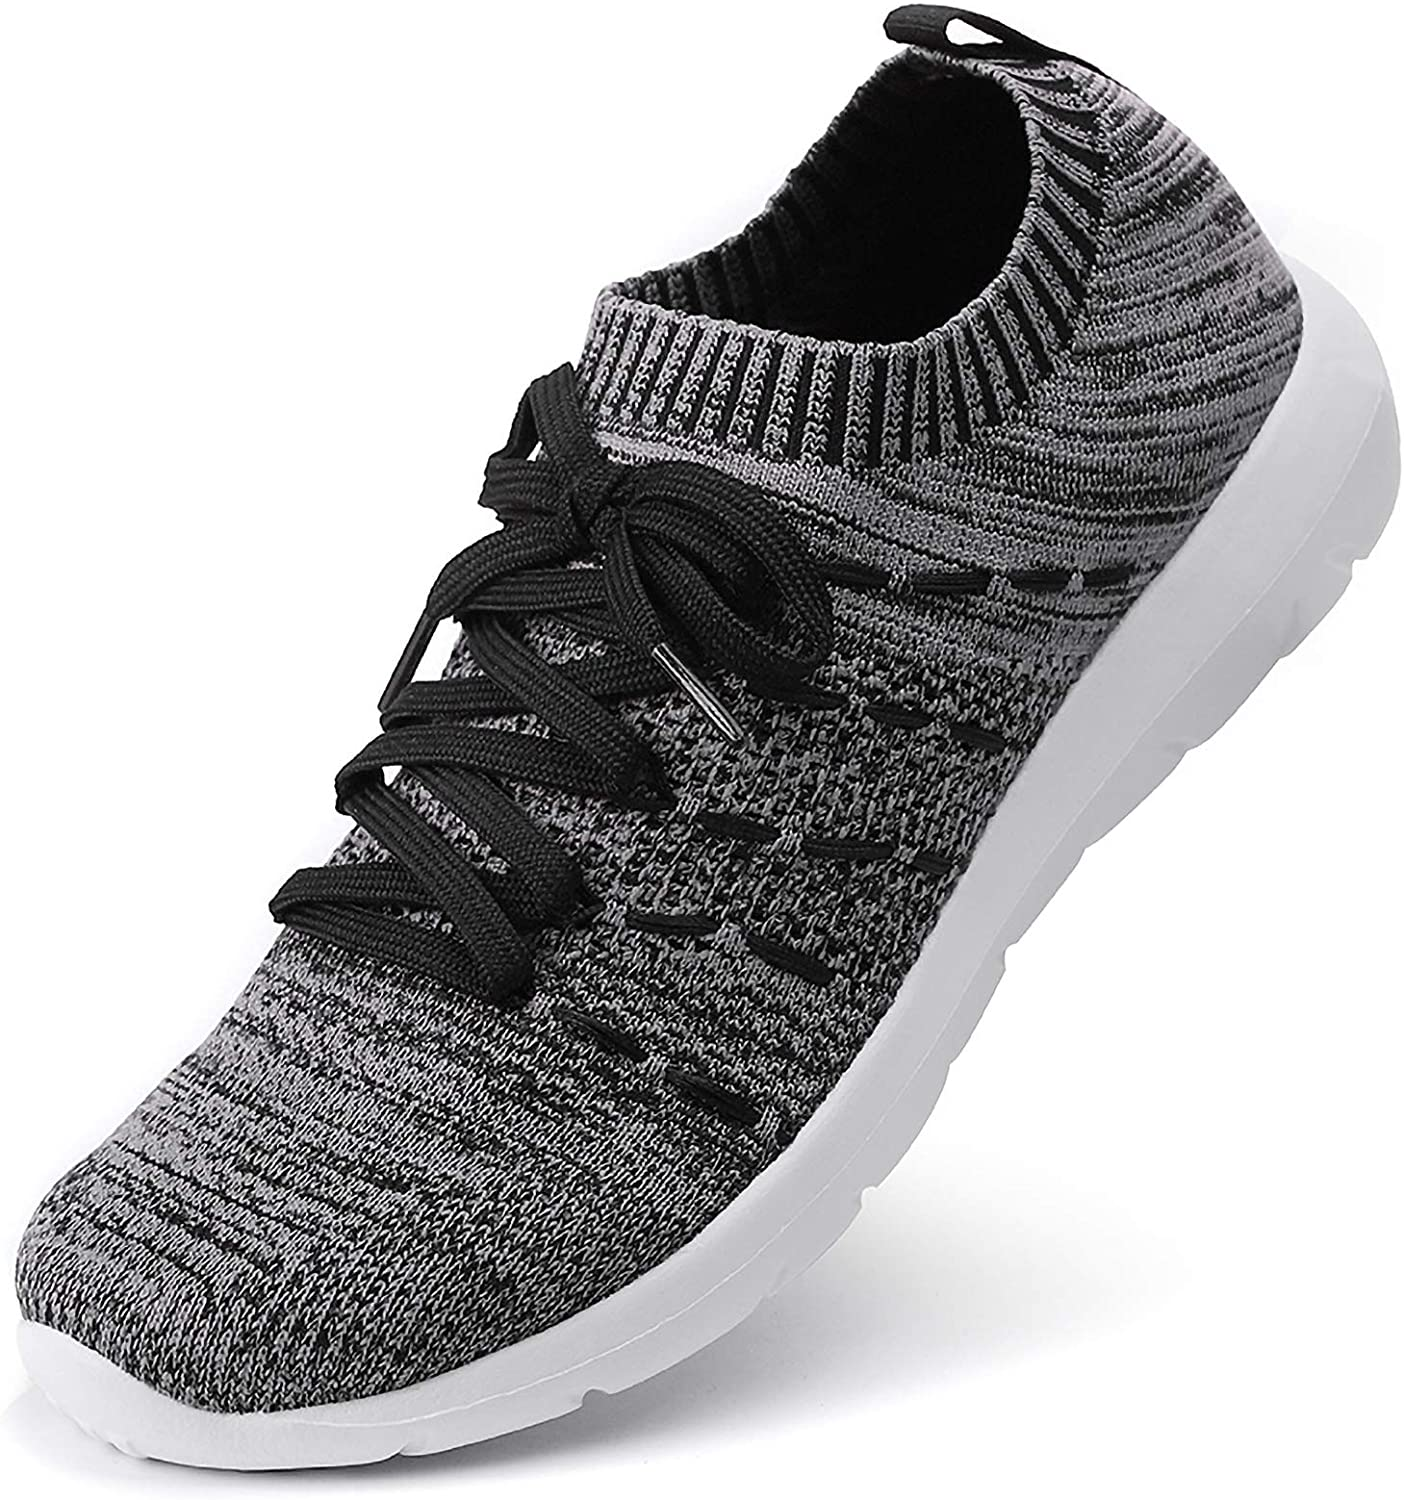 EvinTer Women's Running Shoes Lightweight Comfortable Mesh Sports Shoes Casual Walking Athletic Sneakers